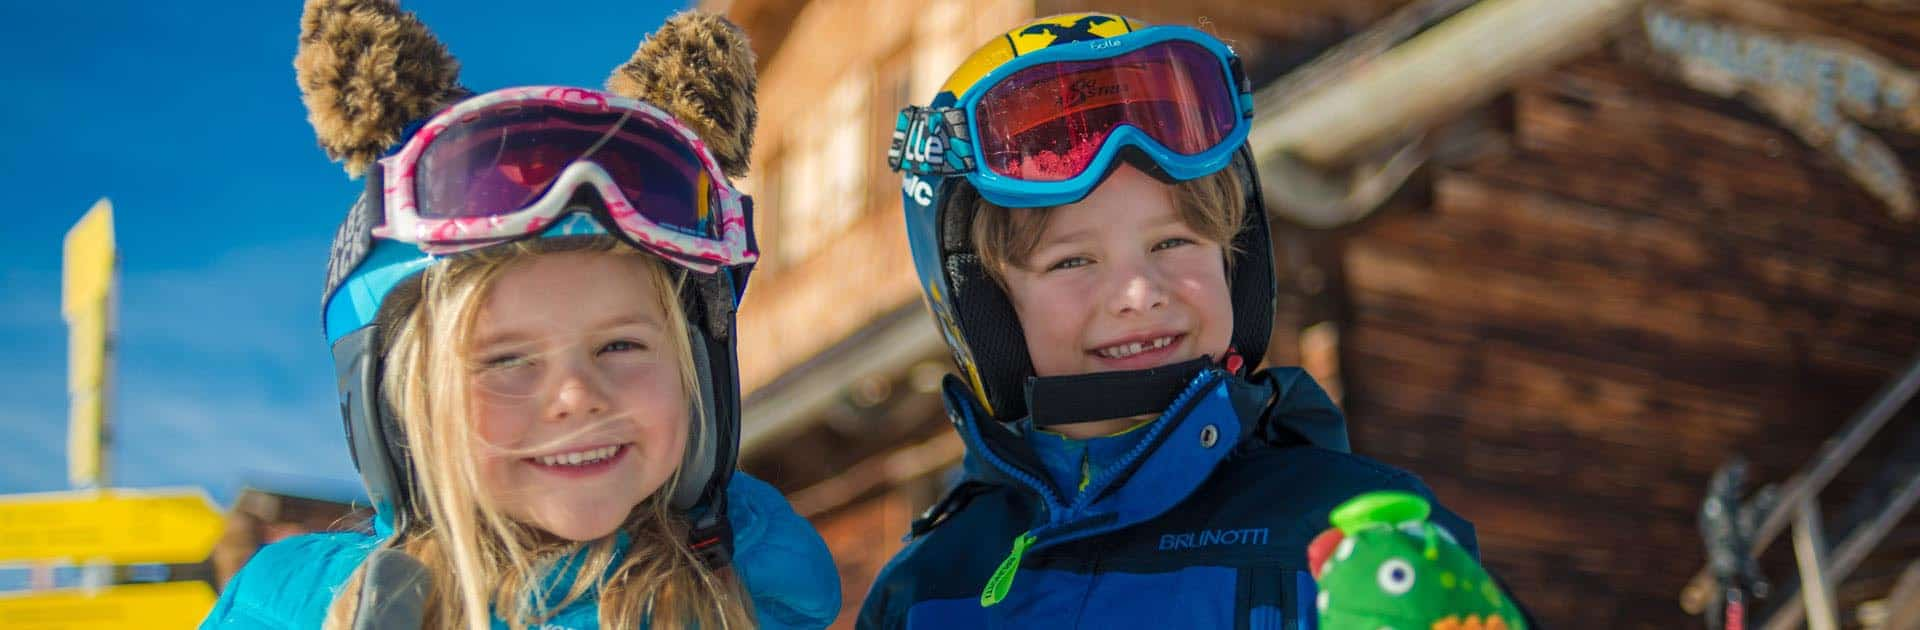 adventure holiday for families in Hotel Matschner